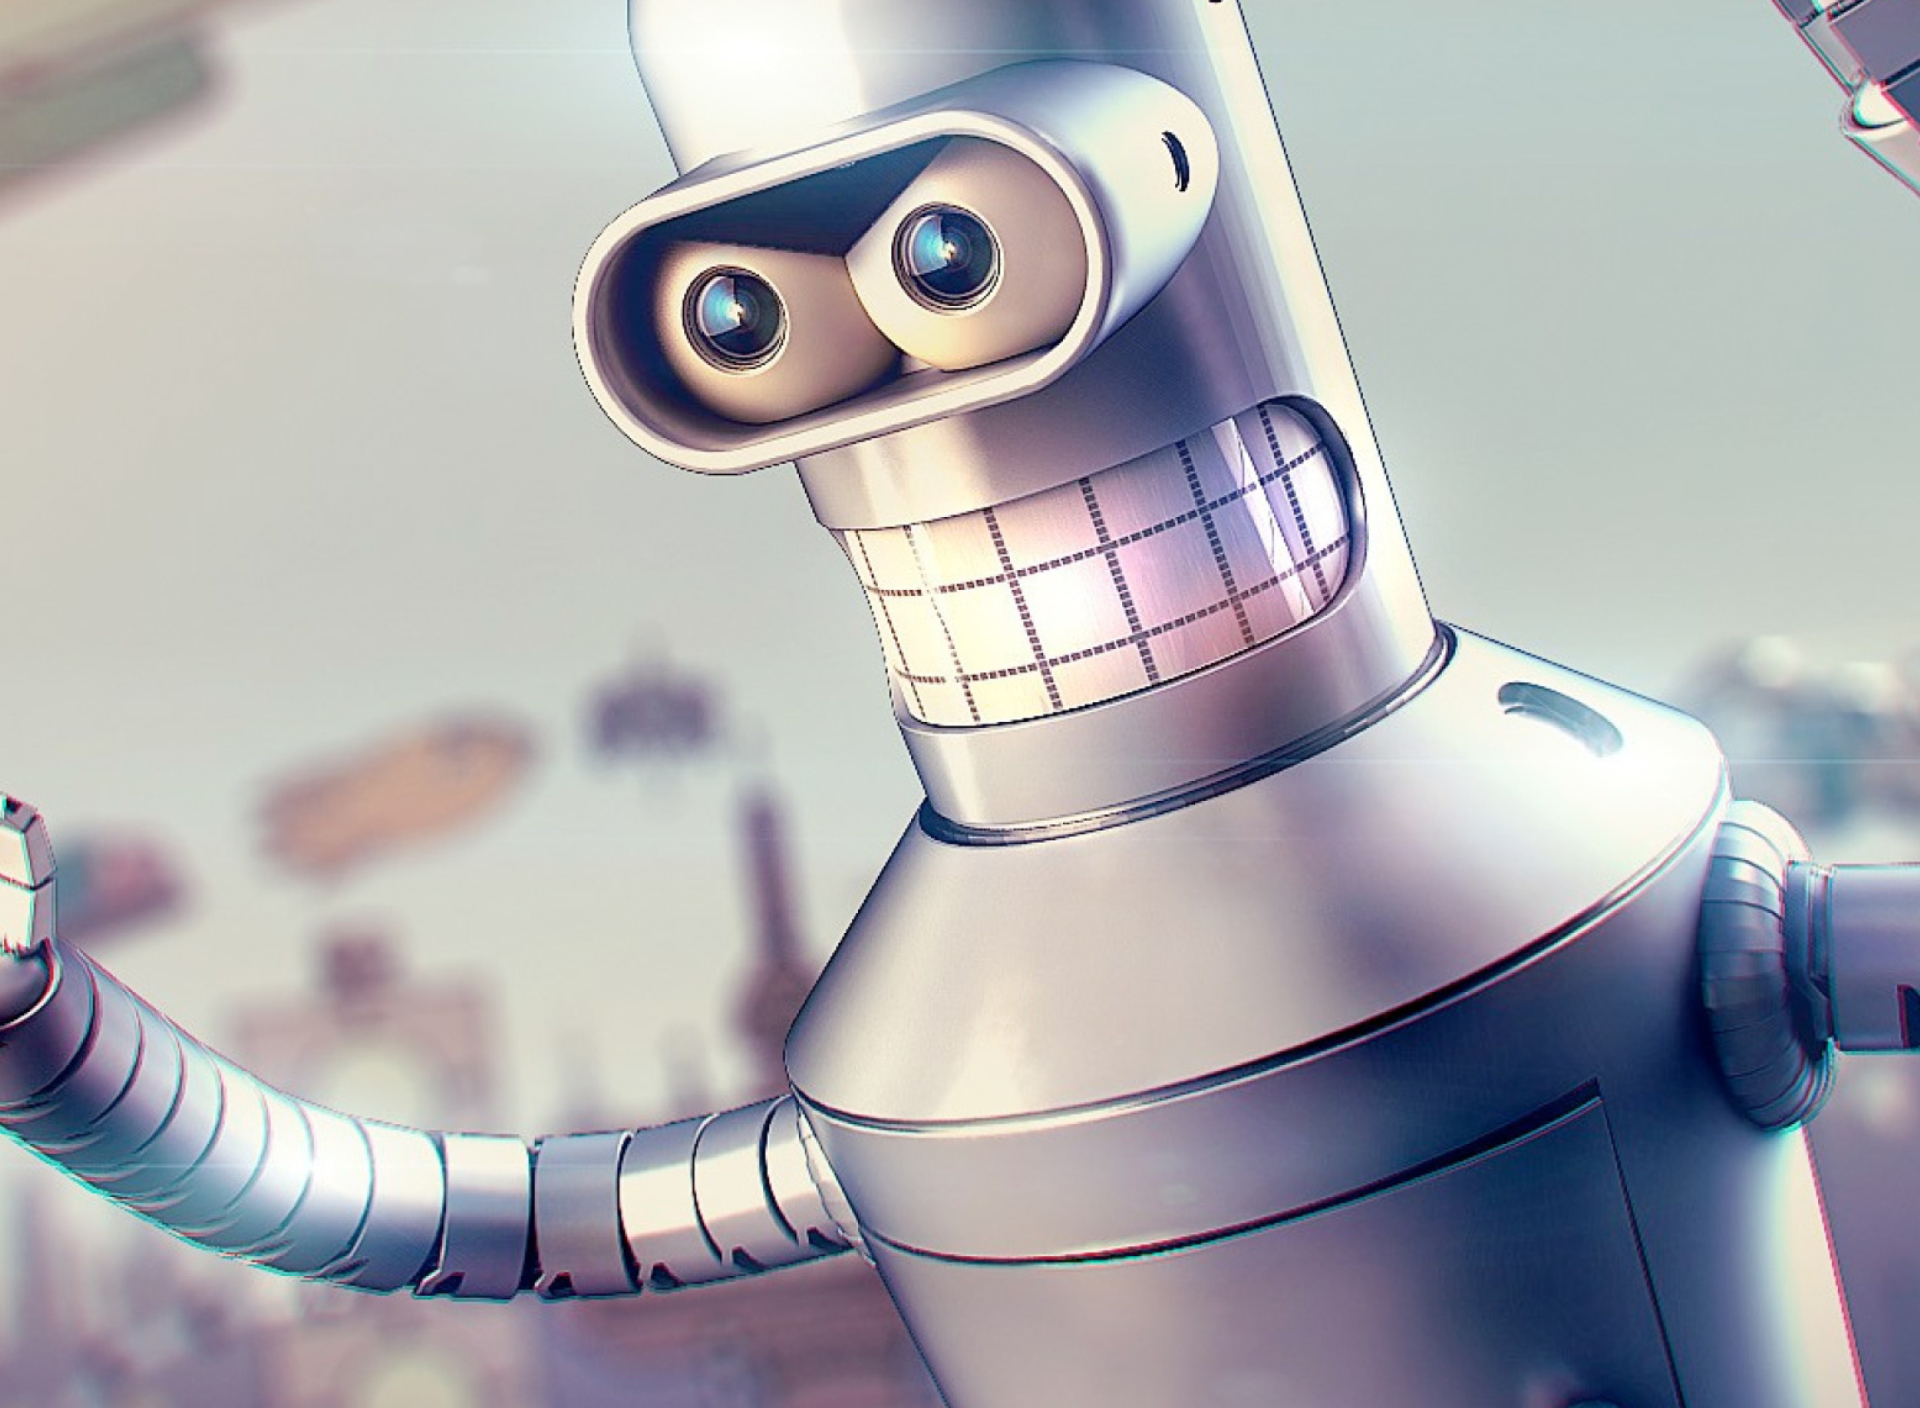 Bender wallpaper 1920x1408